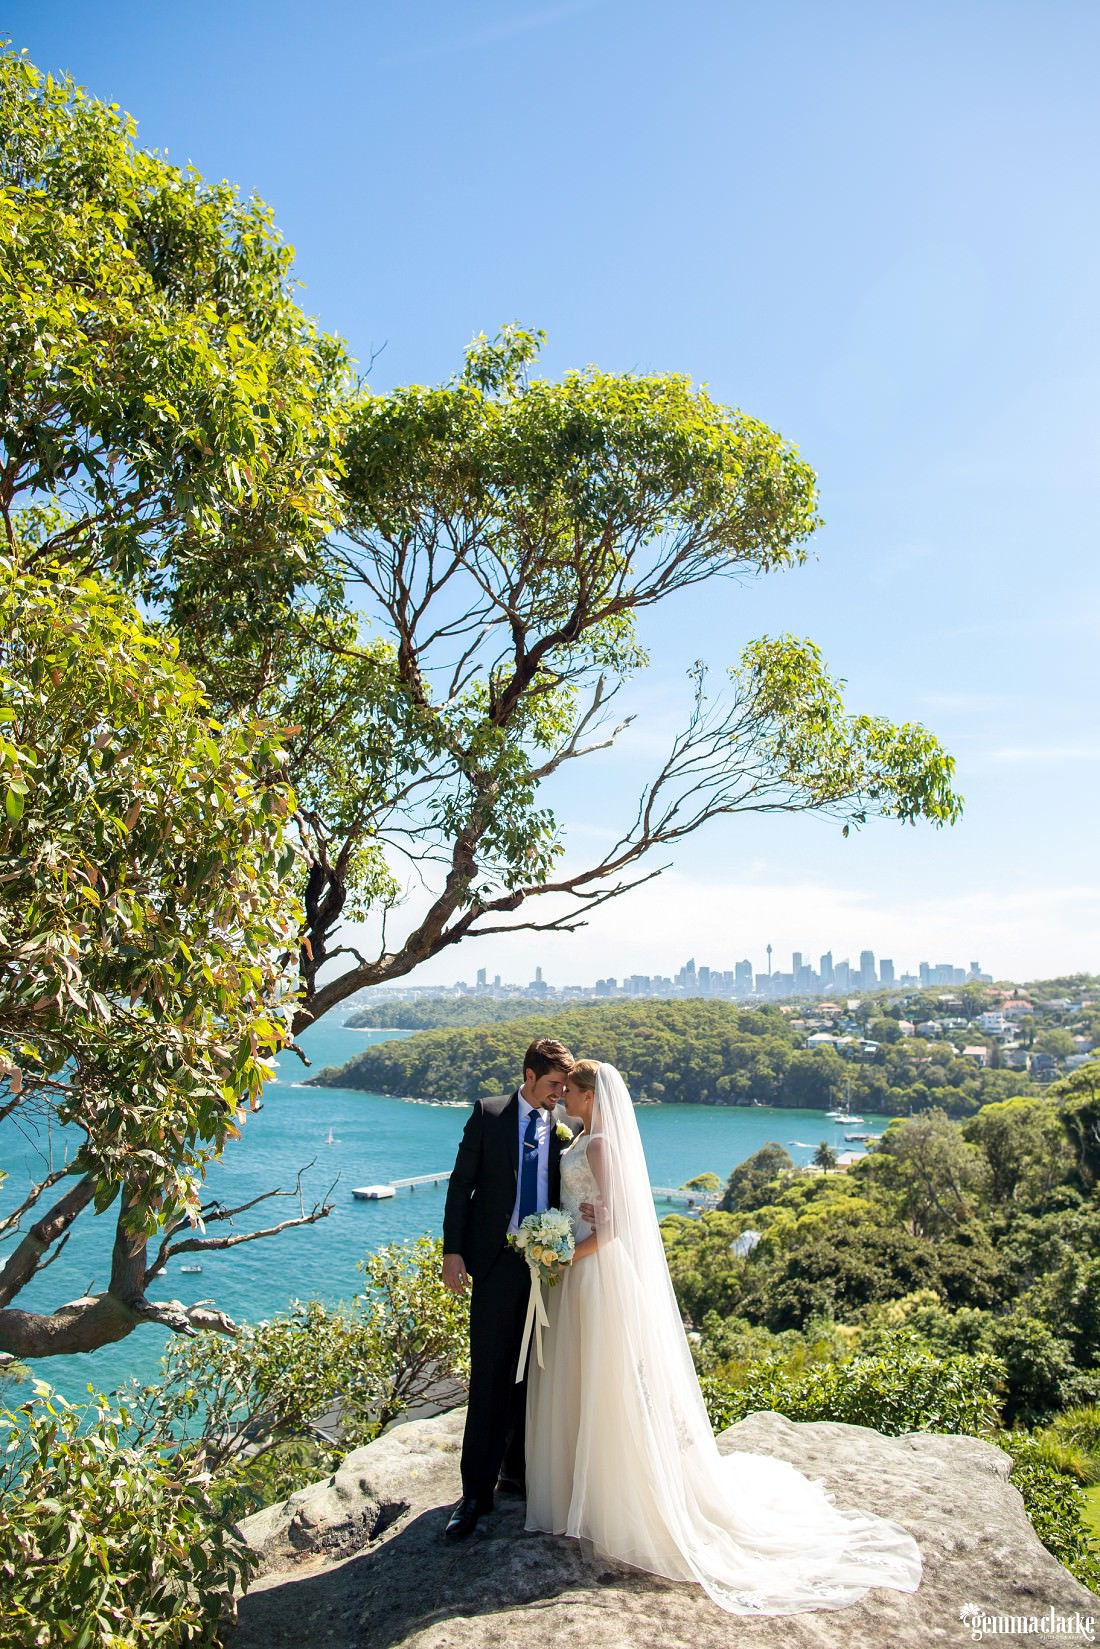 A bride and groom share an eskimo kiss will standing on a large rock near a tree with the city and harbour in the background